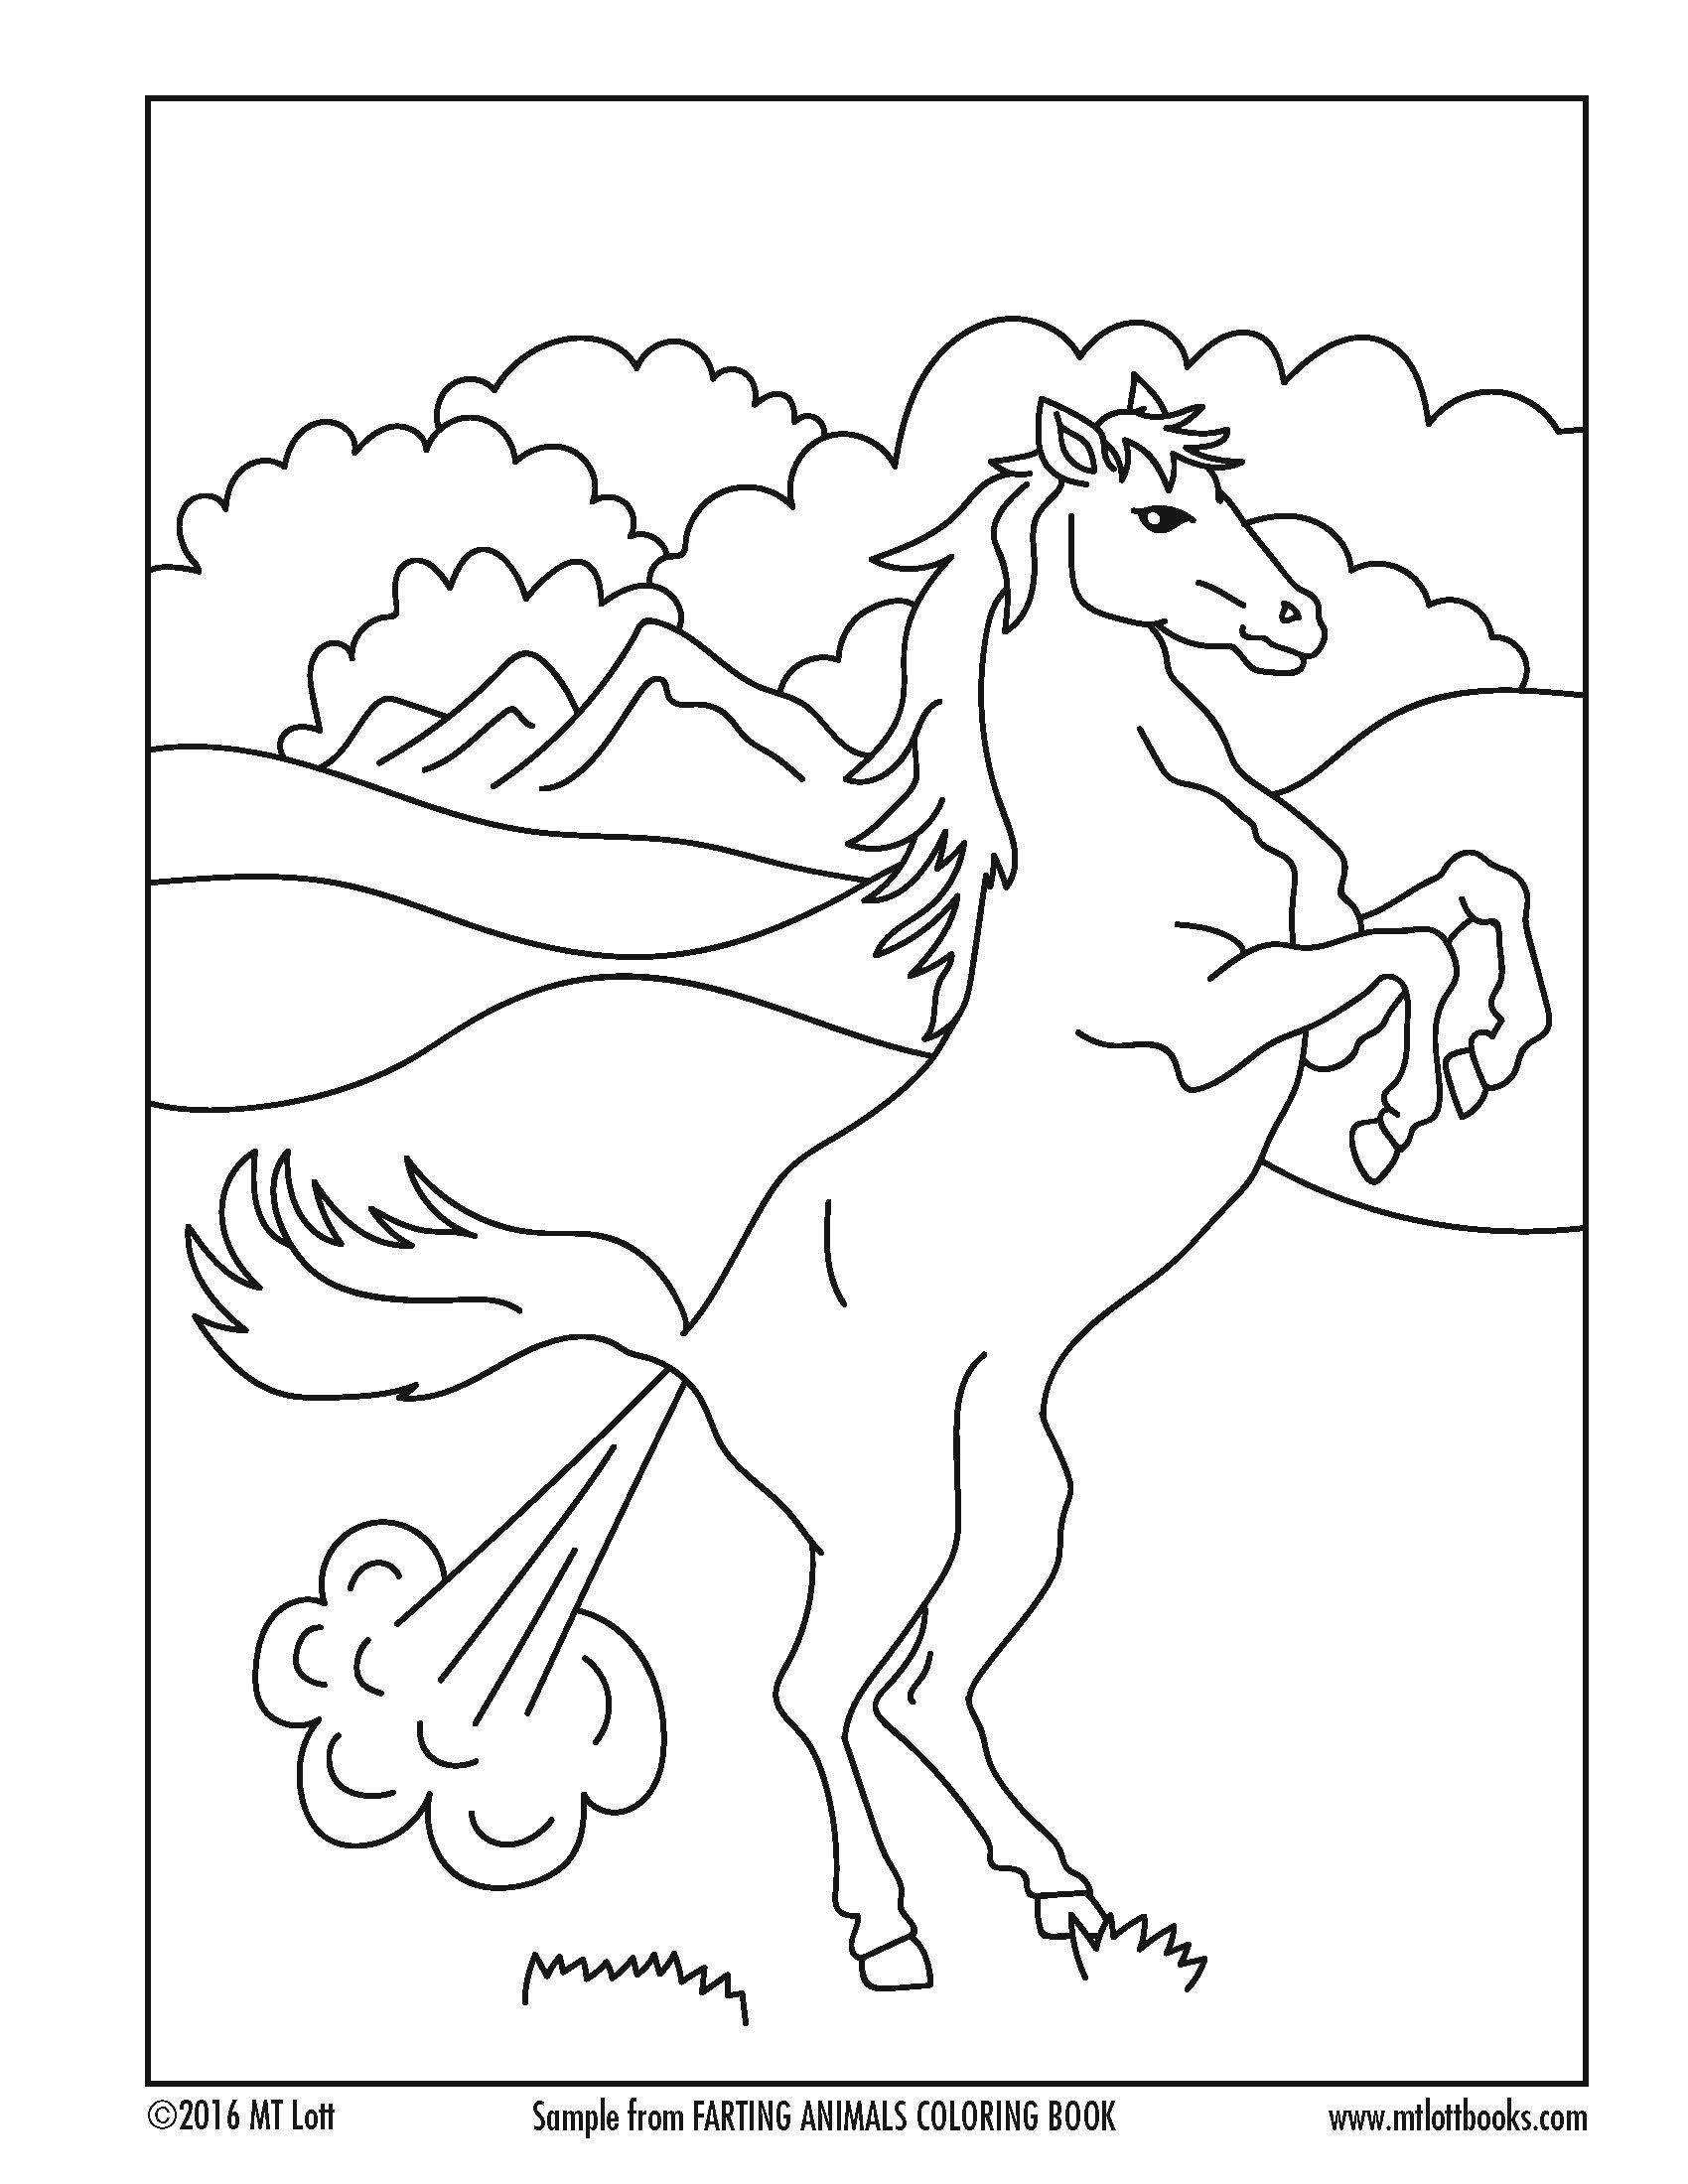 Free Coloring Page From M T Lott S Farting Animals Coloring Book Mermaid Coloring Book Cat Coloring Book Free Coloring Pages